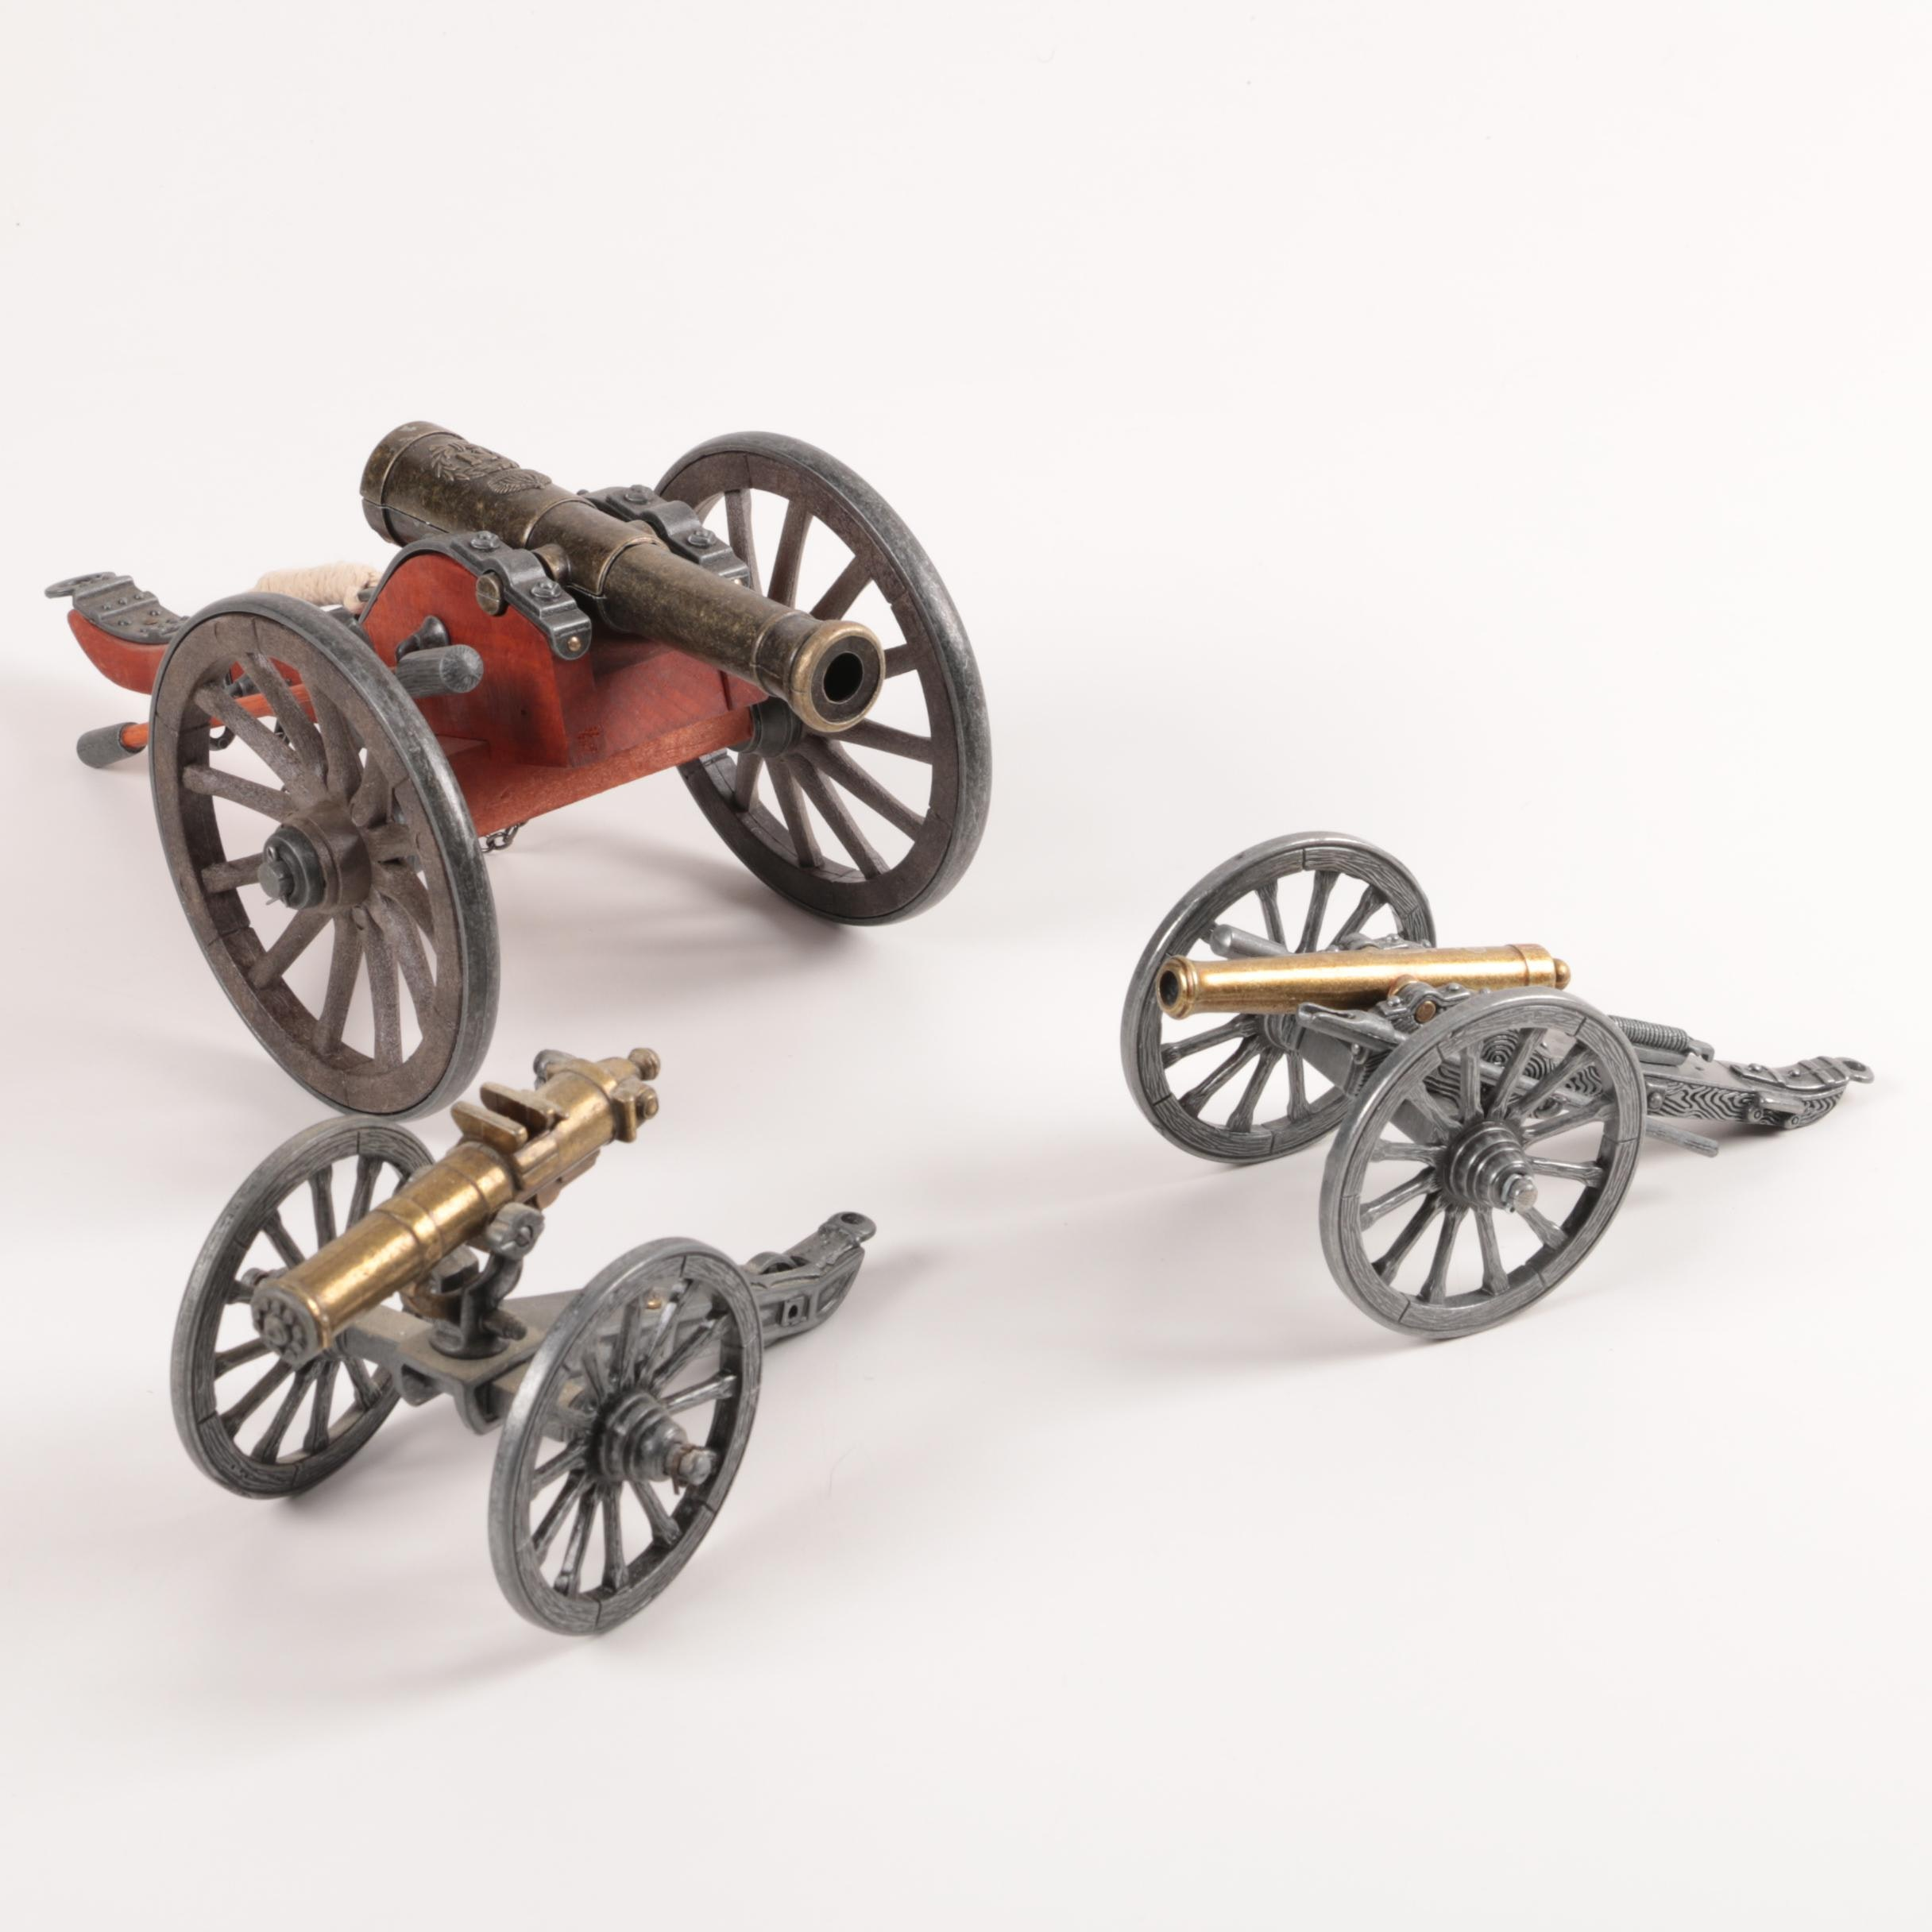 Collection of Cannon and Gatling Figurines